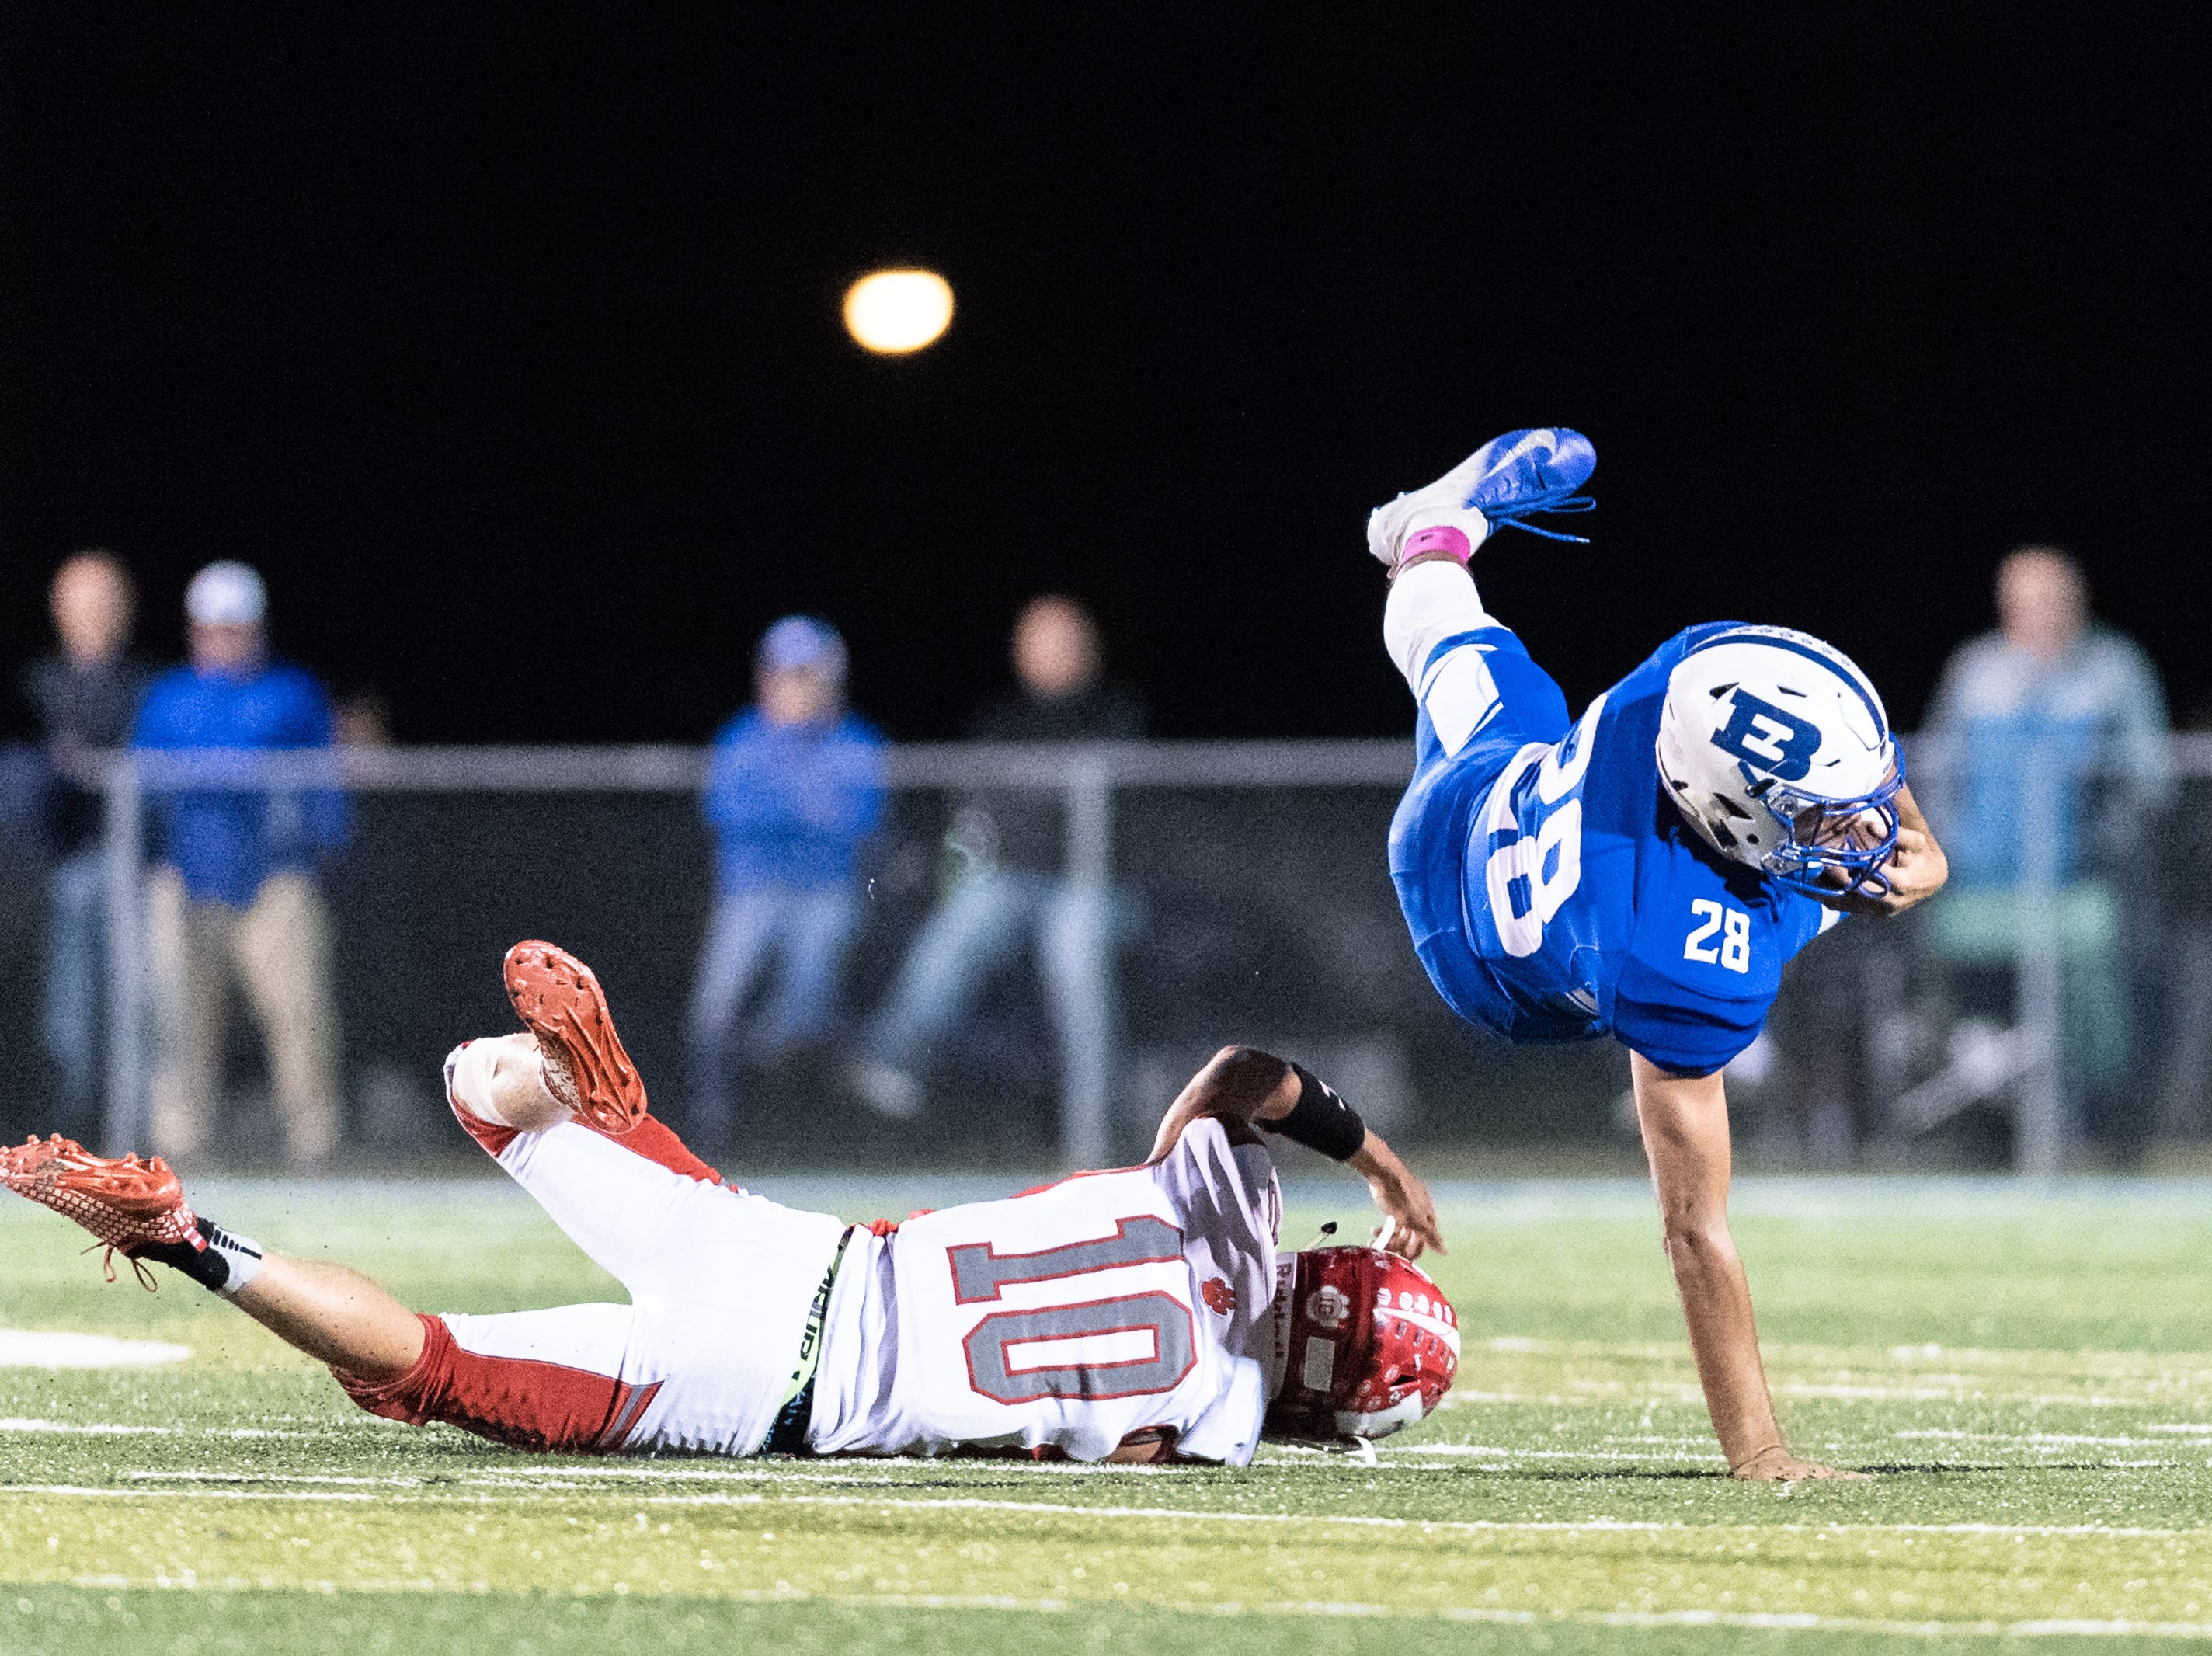 Franklin's Tyler Harrison takes down Brevard's Anthony Fields during their Friday night football game, Oct. 12, 2018.